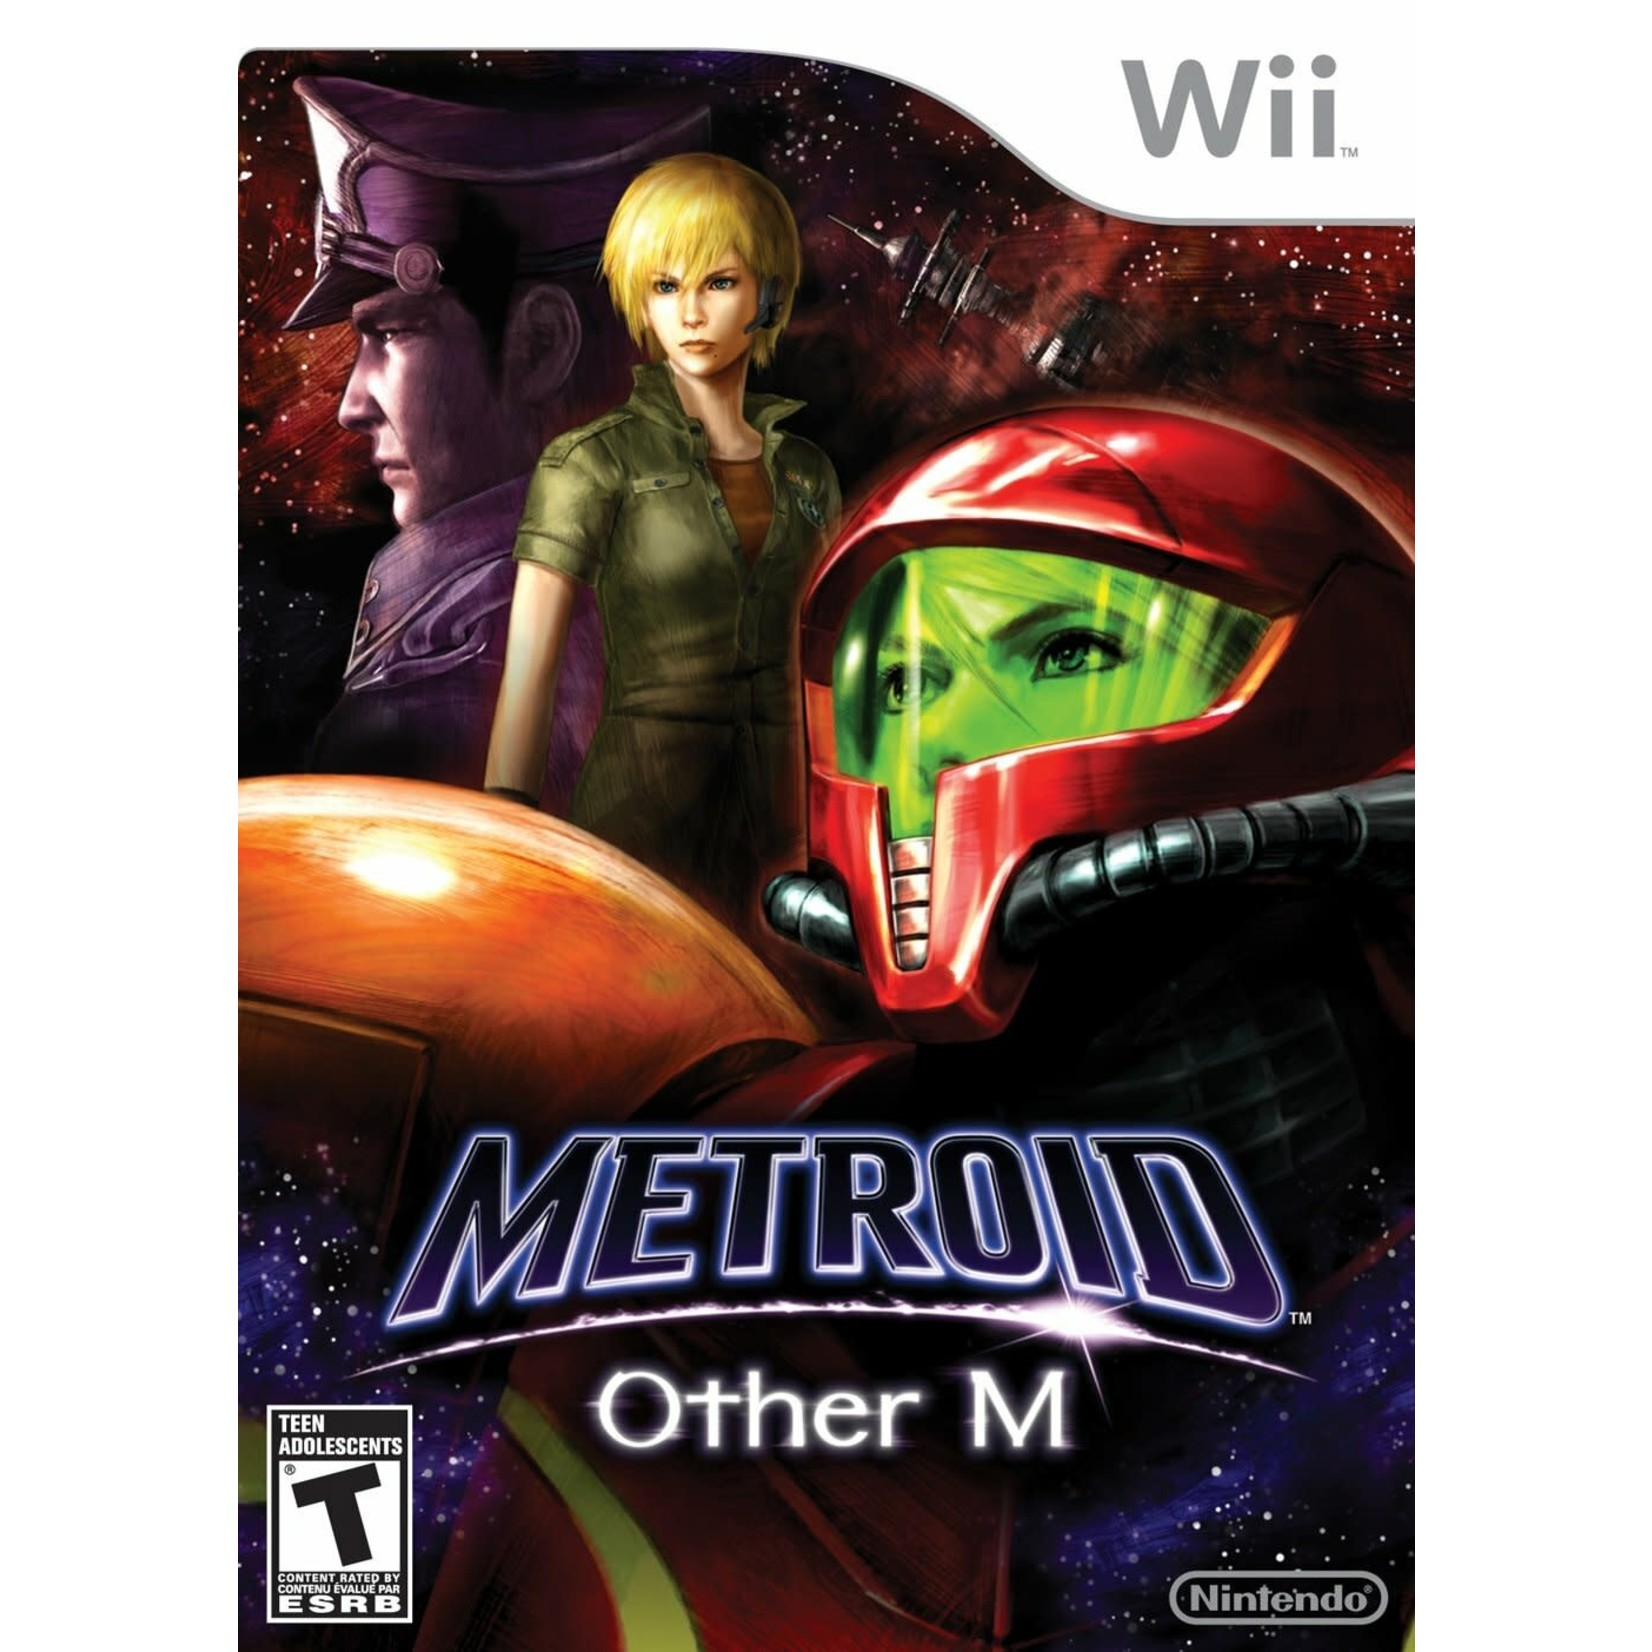 WIIusd-Metroid: Other M